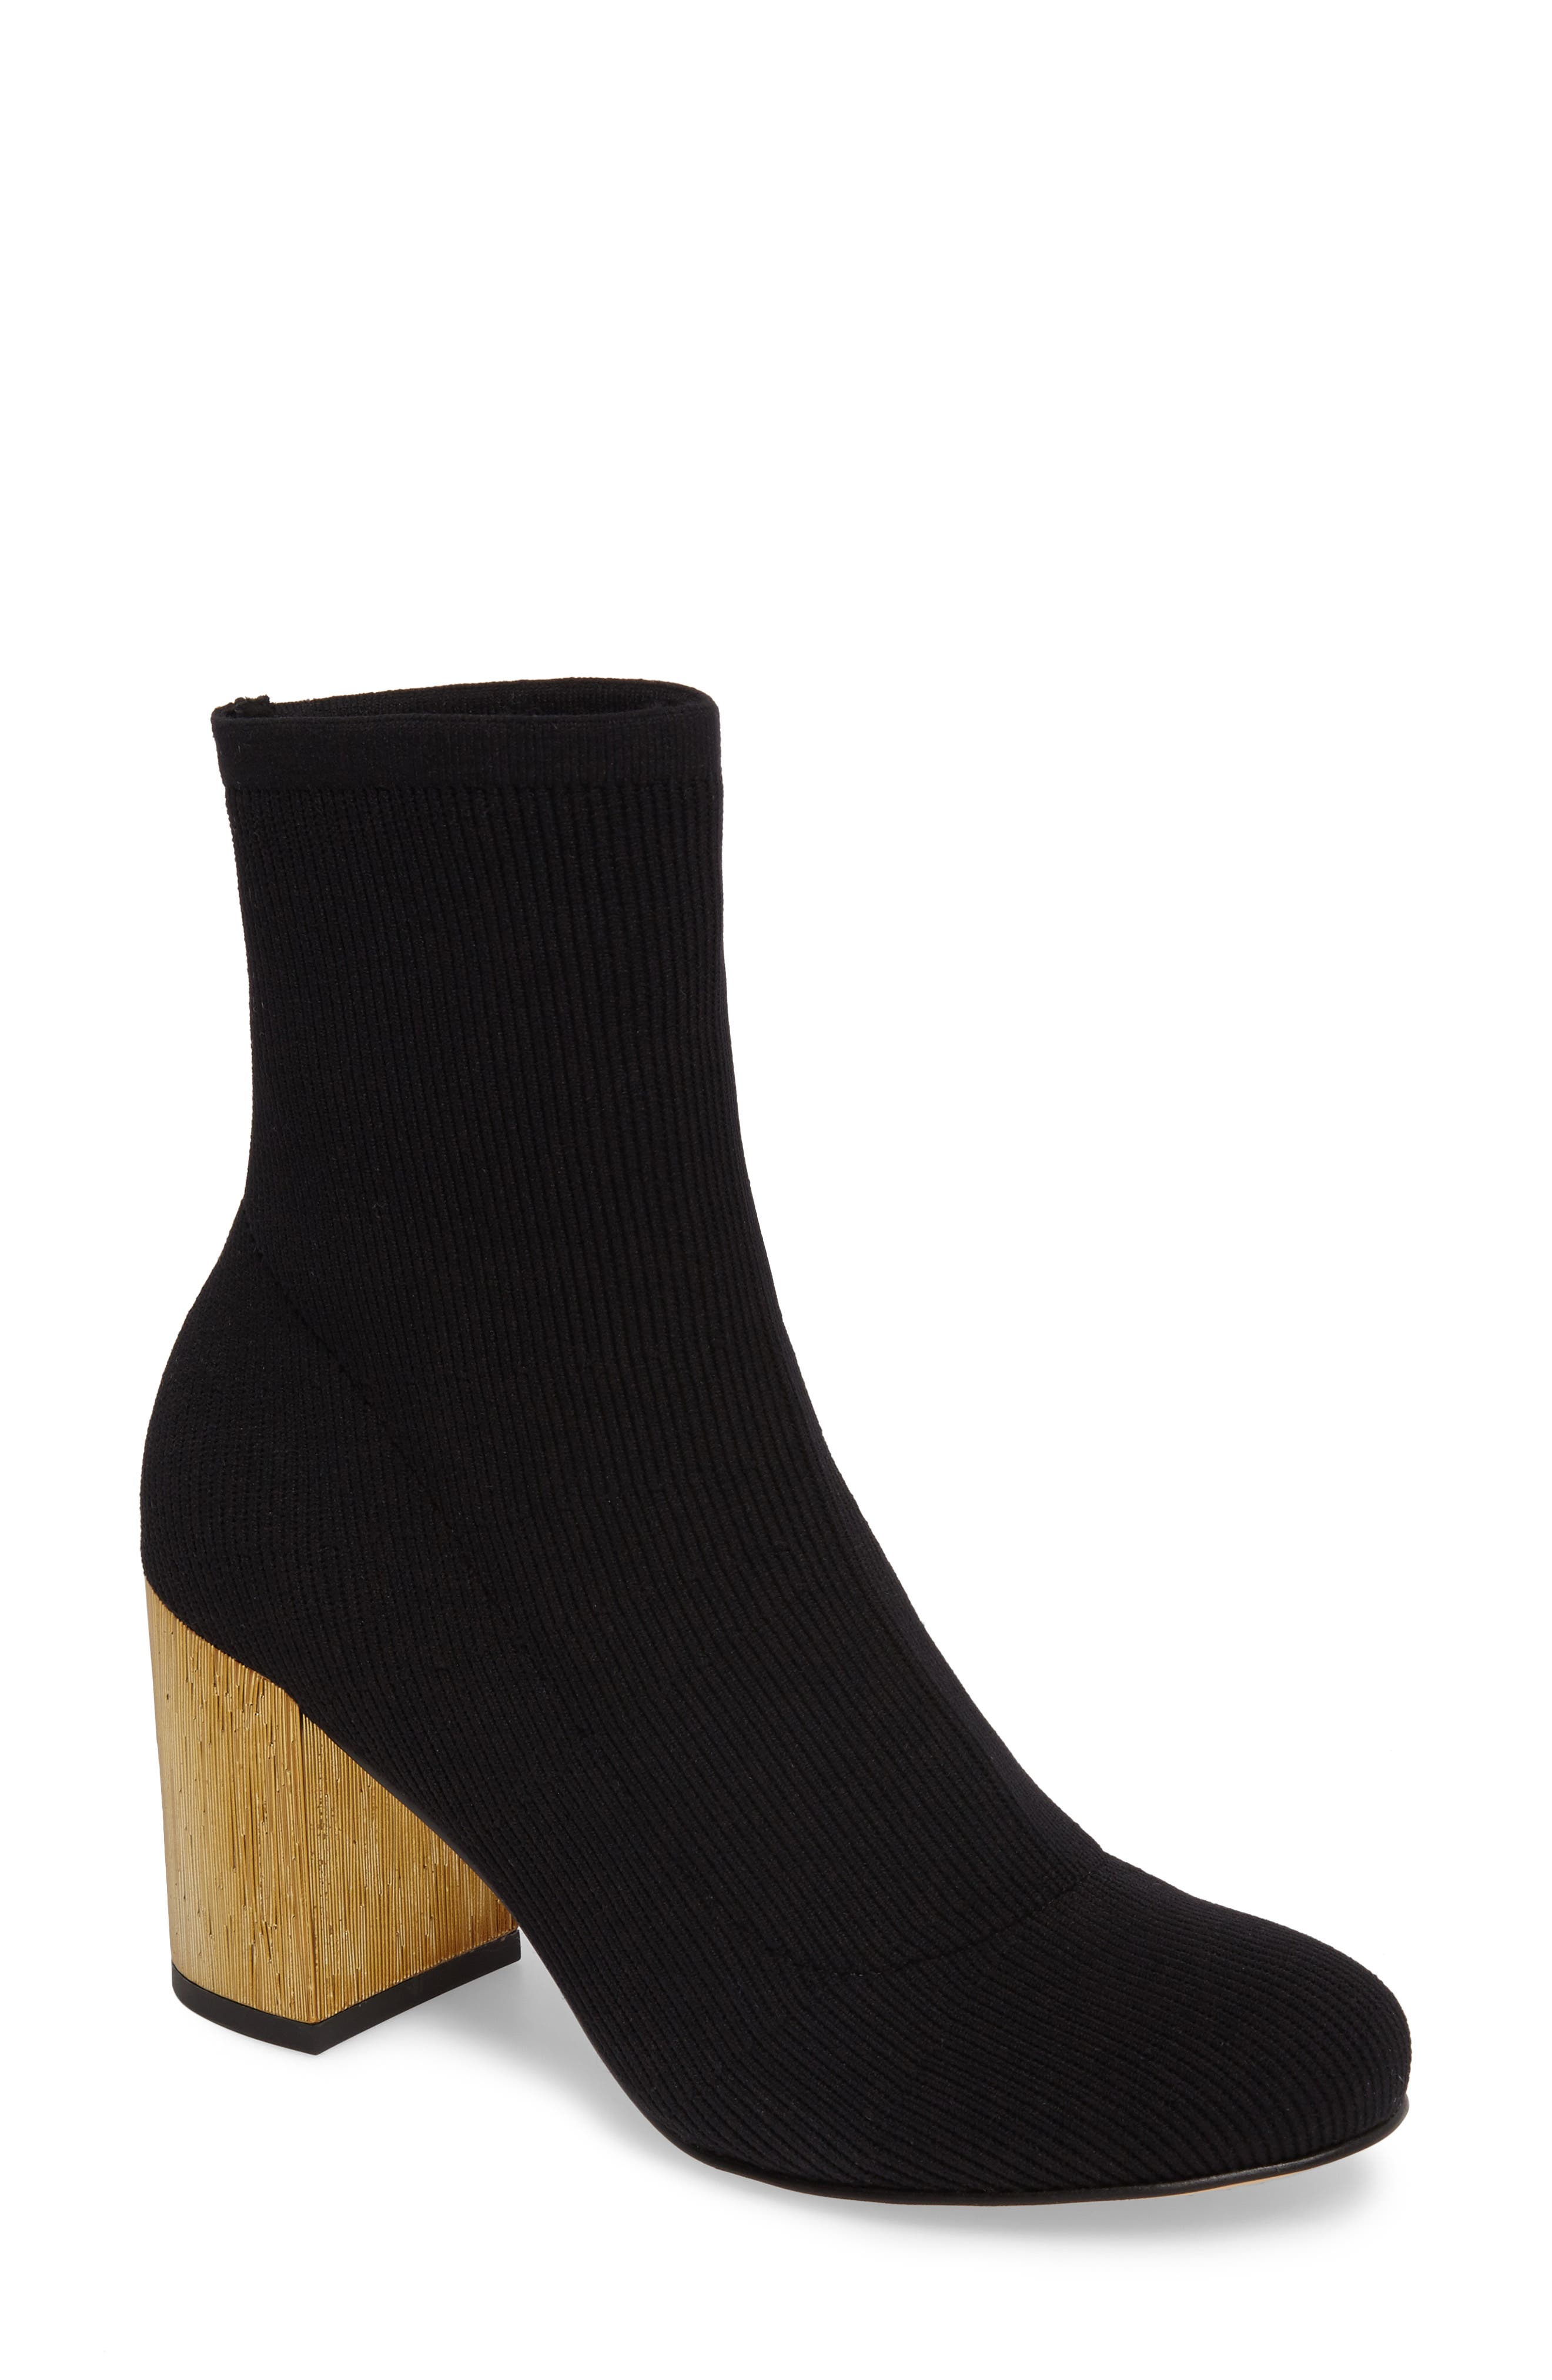 Main Image - Splendid Rosinda Knit Bootie (Women)